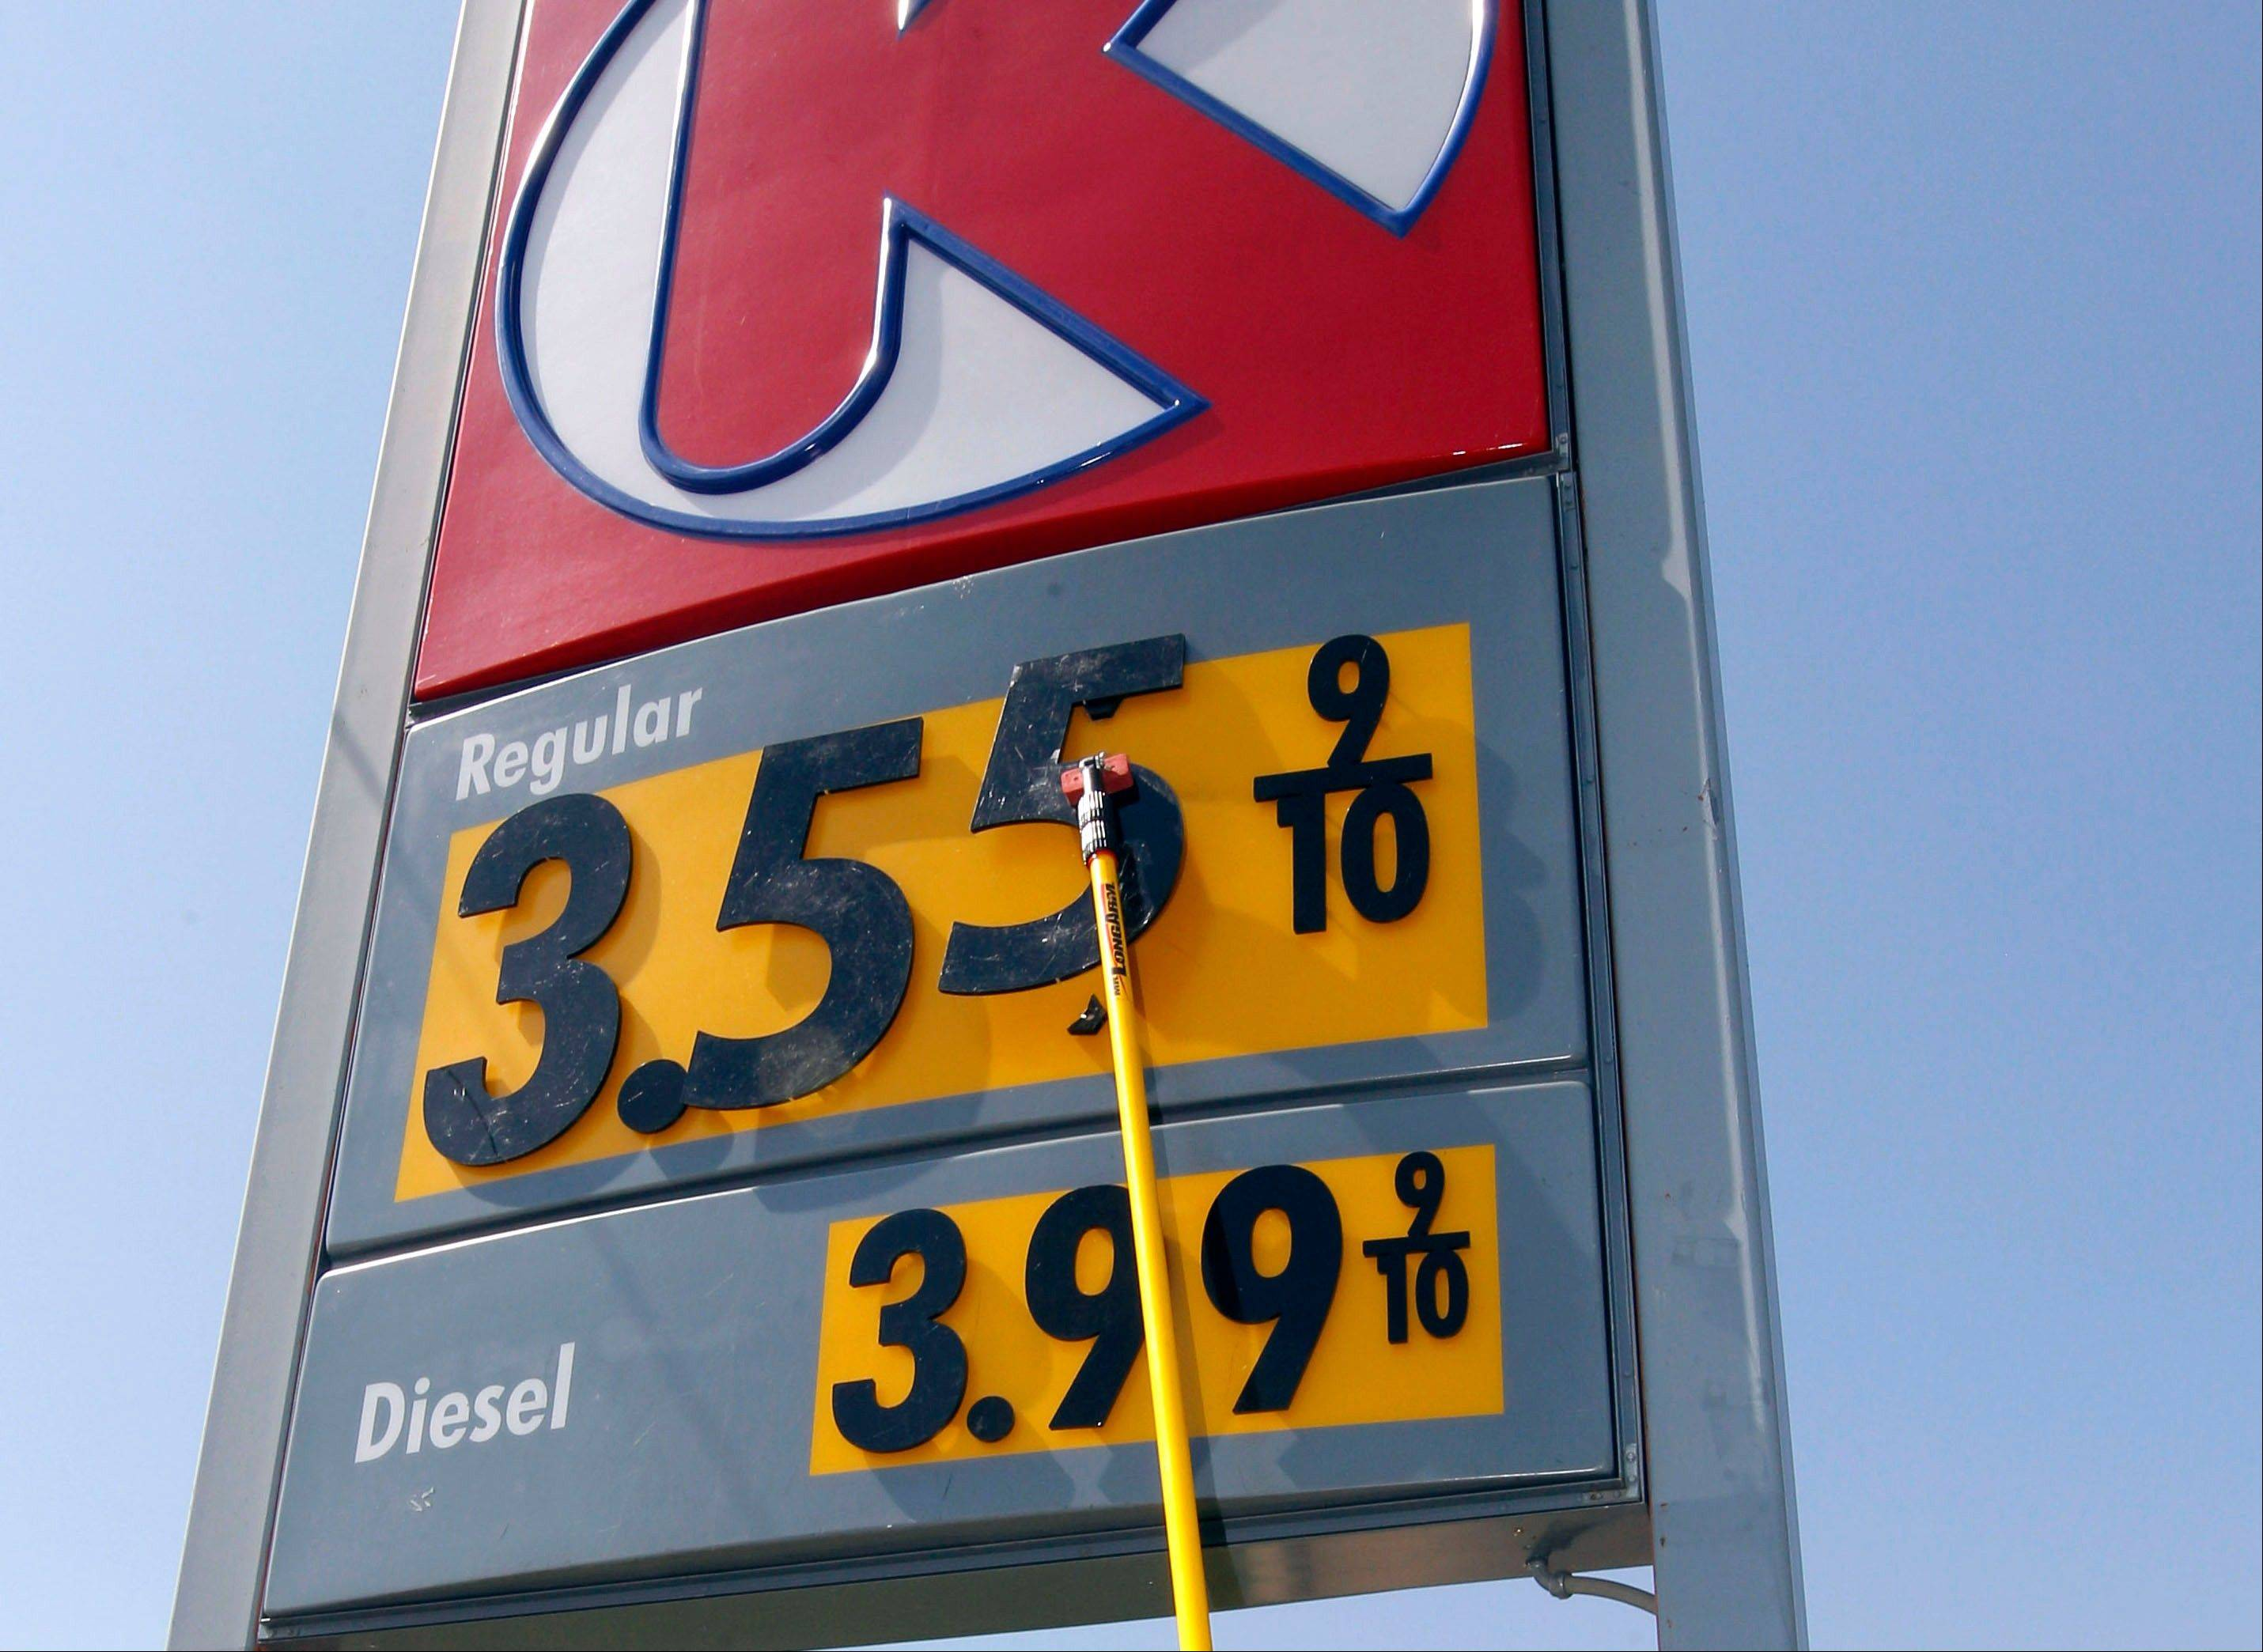 A second month of sharp gains in gasoline costs drove wholesale prices higher in September. But outside of the surge in energy, prices were well contained. Wholesale prices rose 1.1 percent in September following 1.7 percent gain in August which had been the largest one-month gain in more than three years, the Labor Department said Friday, Oct. 12, 2012.